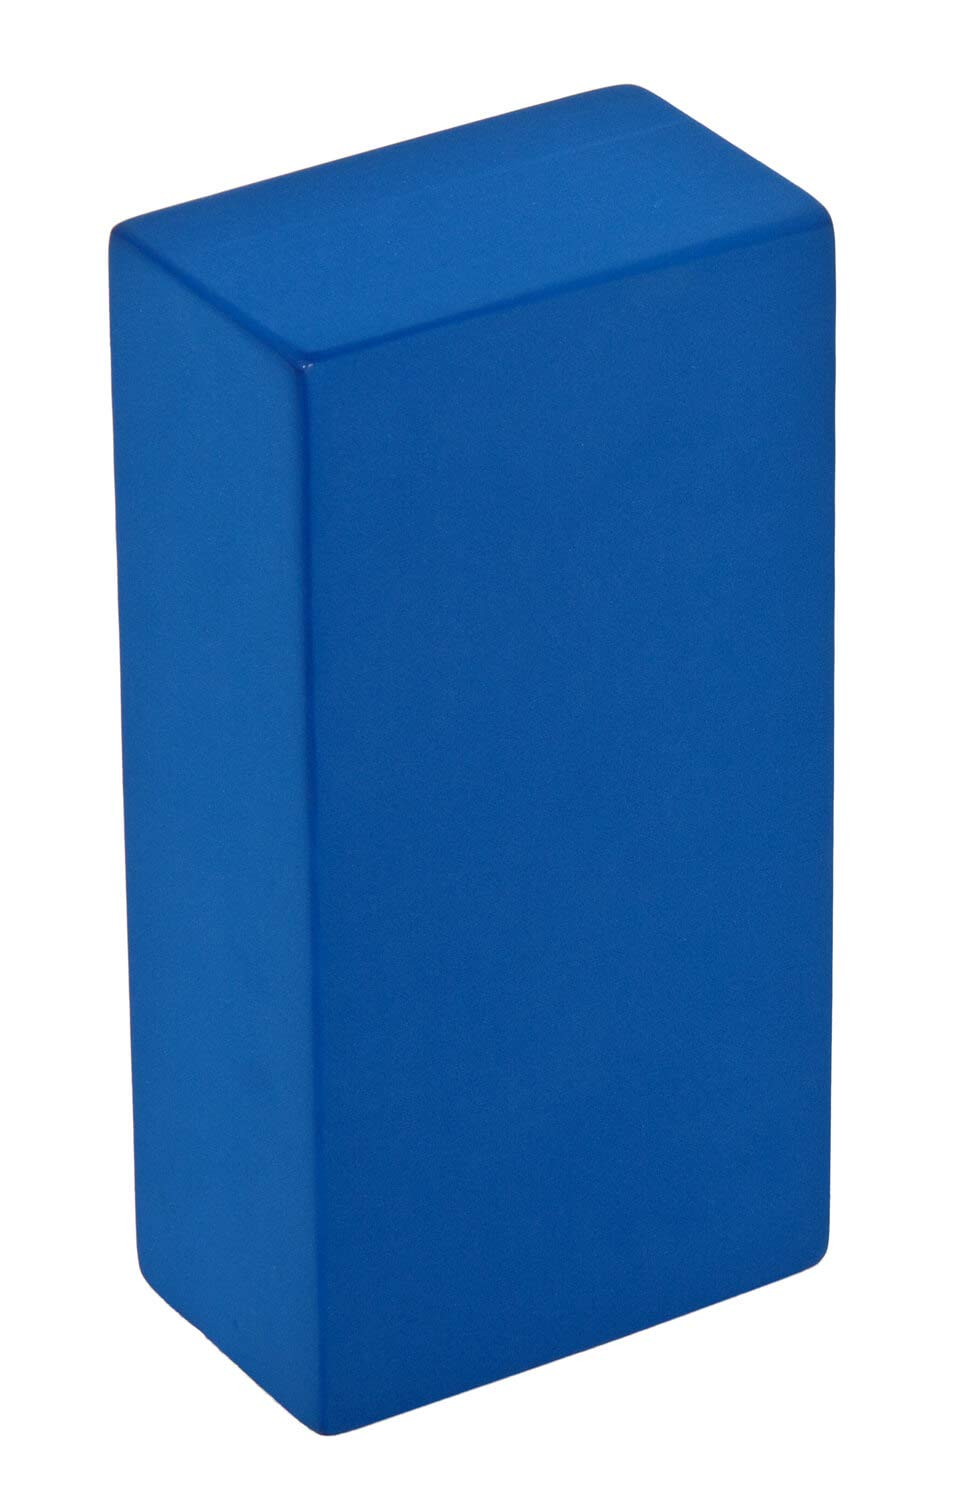 Yogaklotz/Yoga Block high Density yogabox